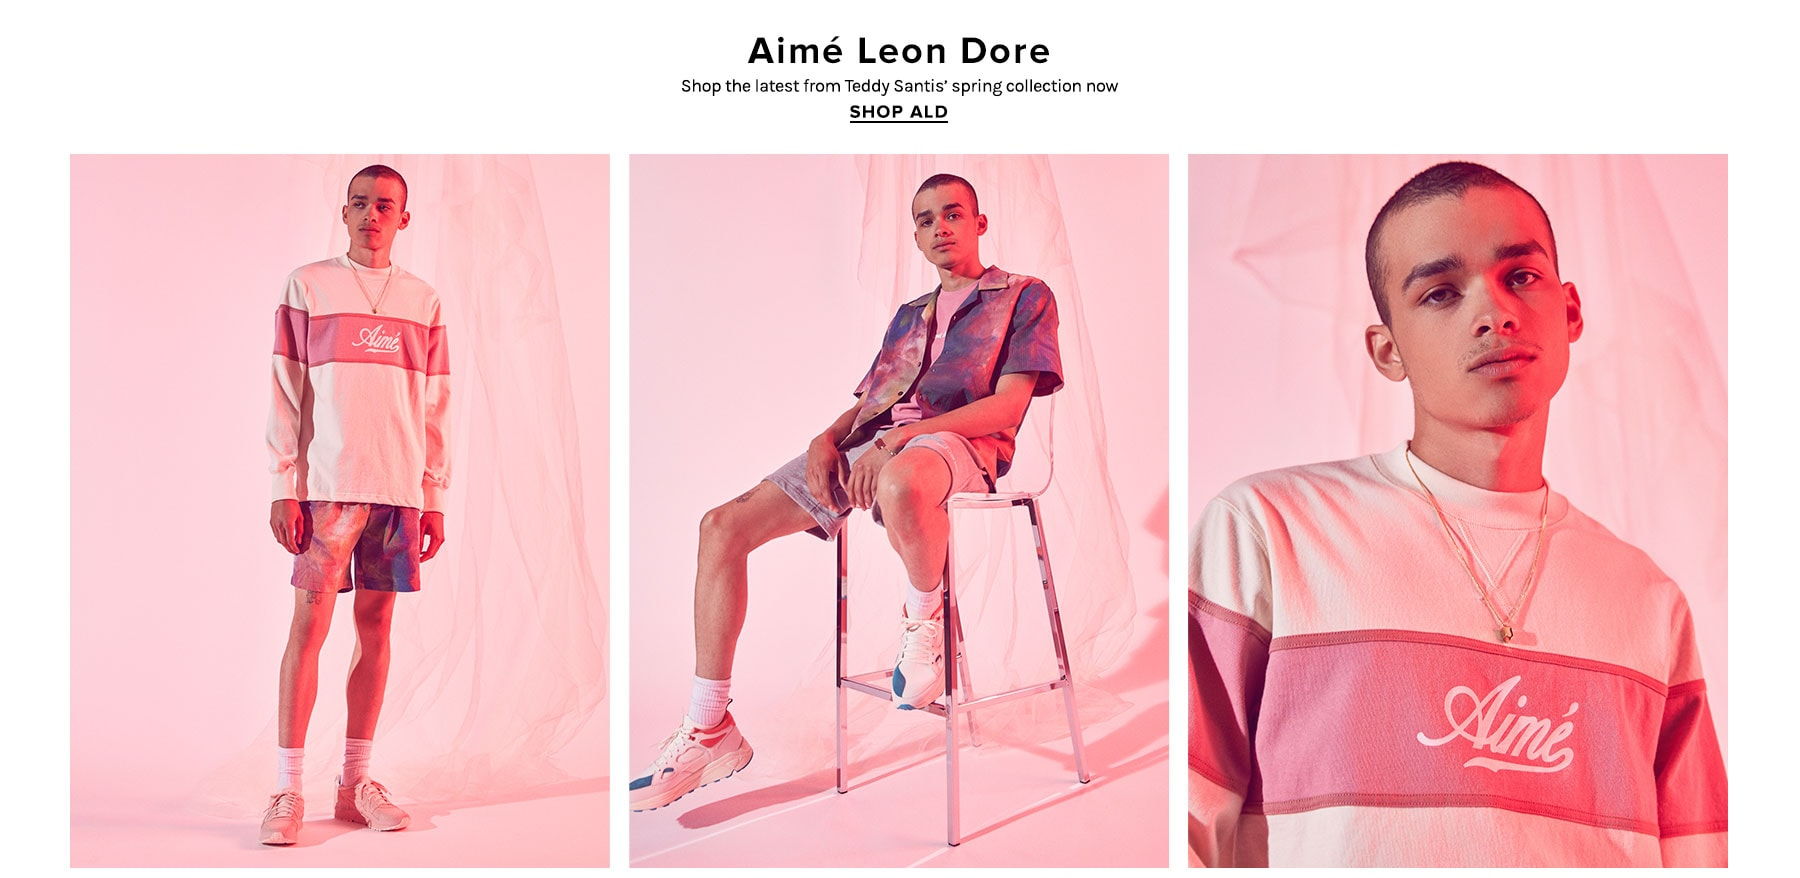 Aime Leon Dore. Shop the latest from Teddy Santis' spring collection now. Shop ALD.